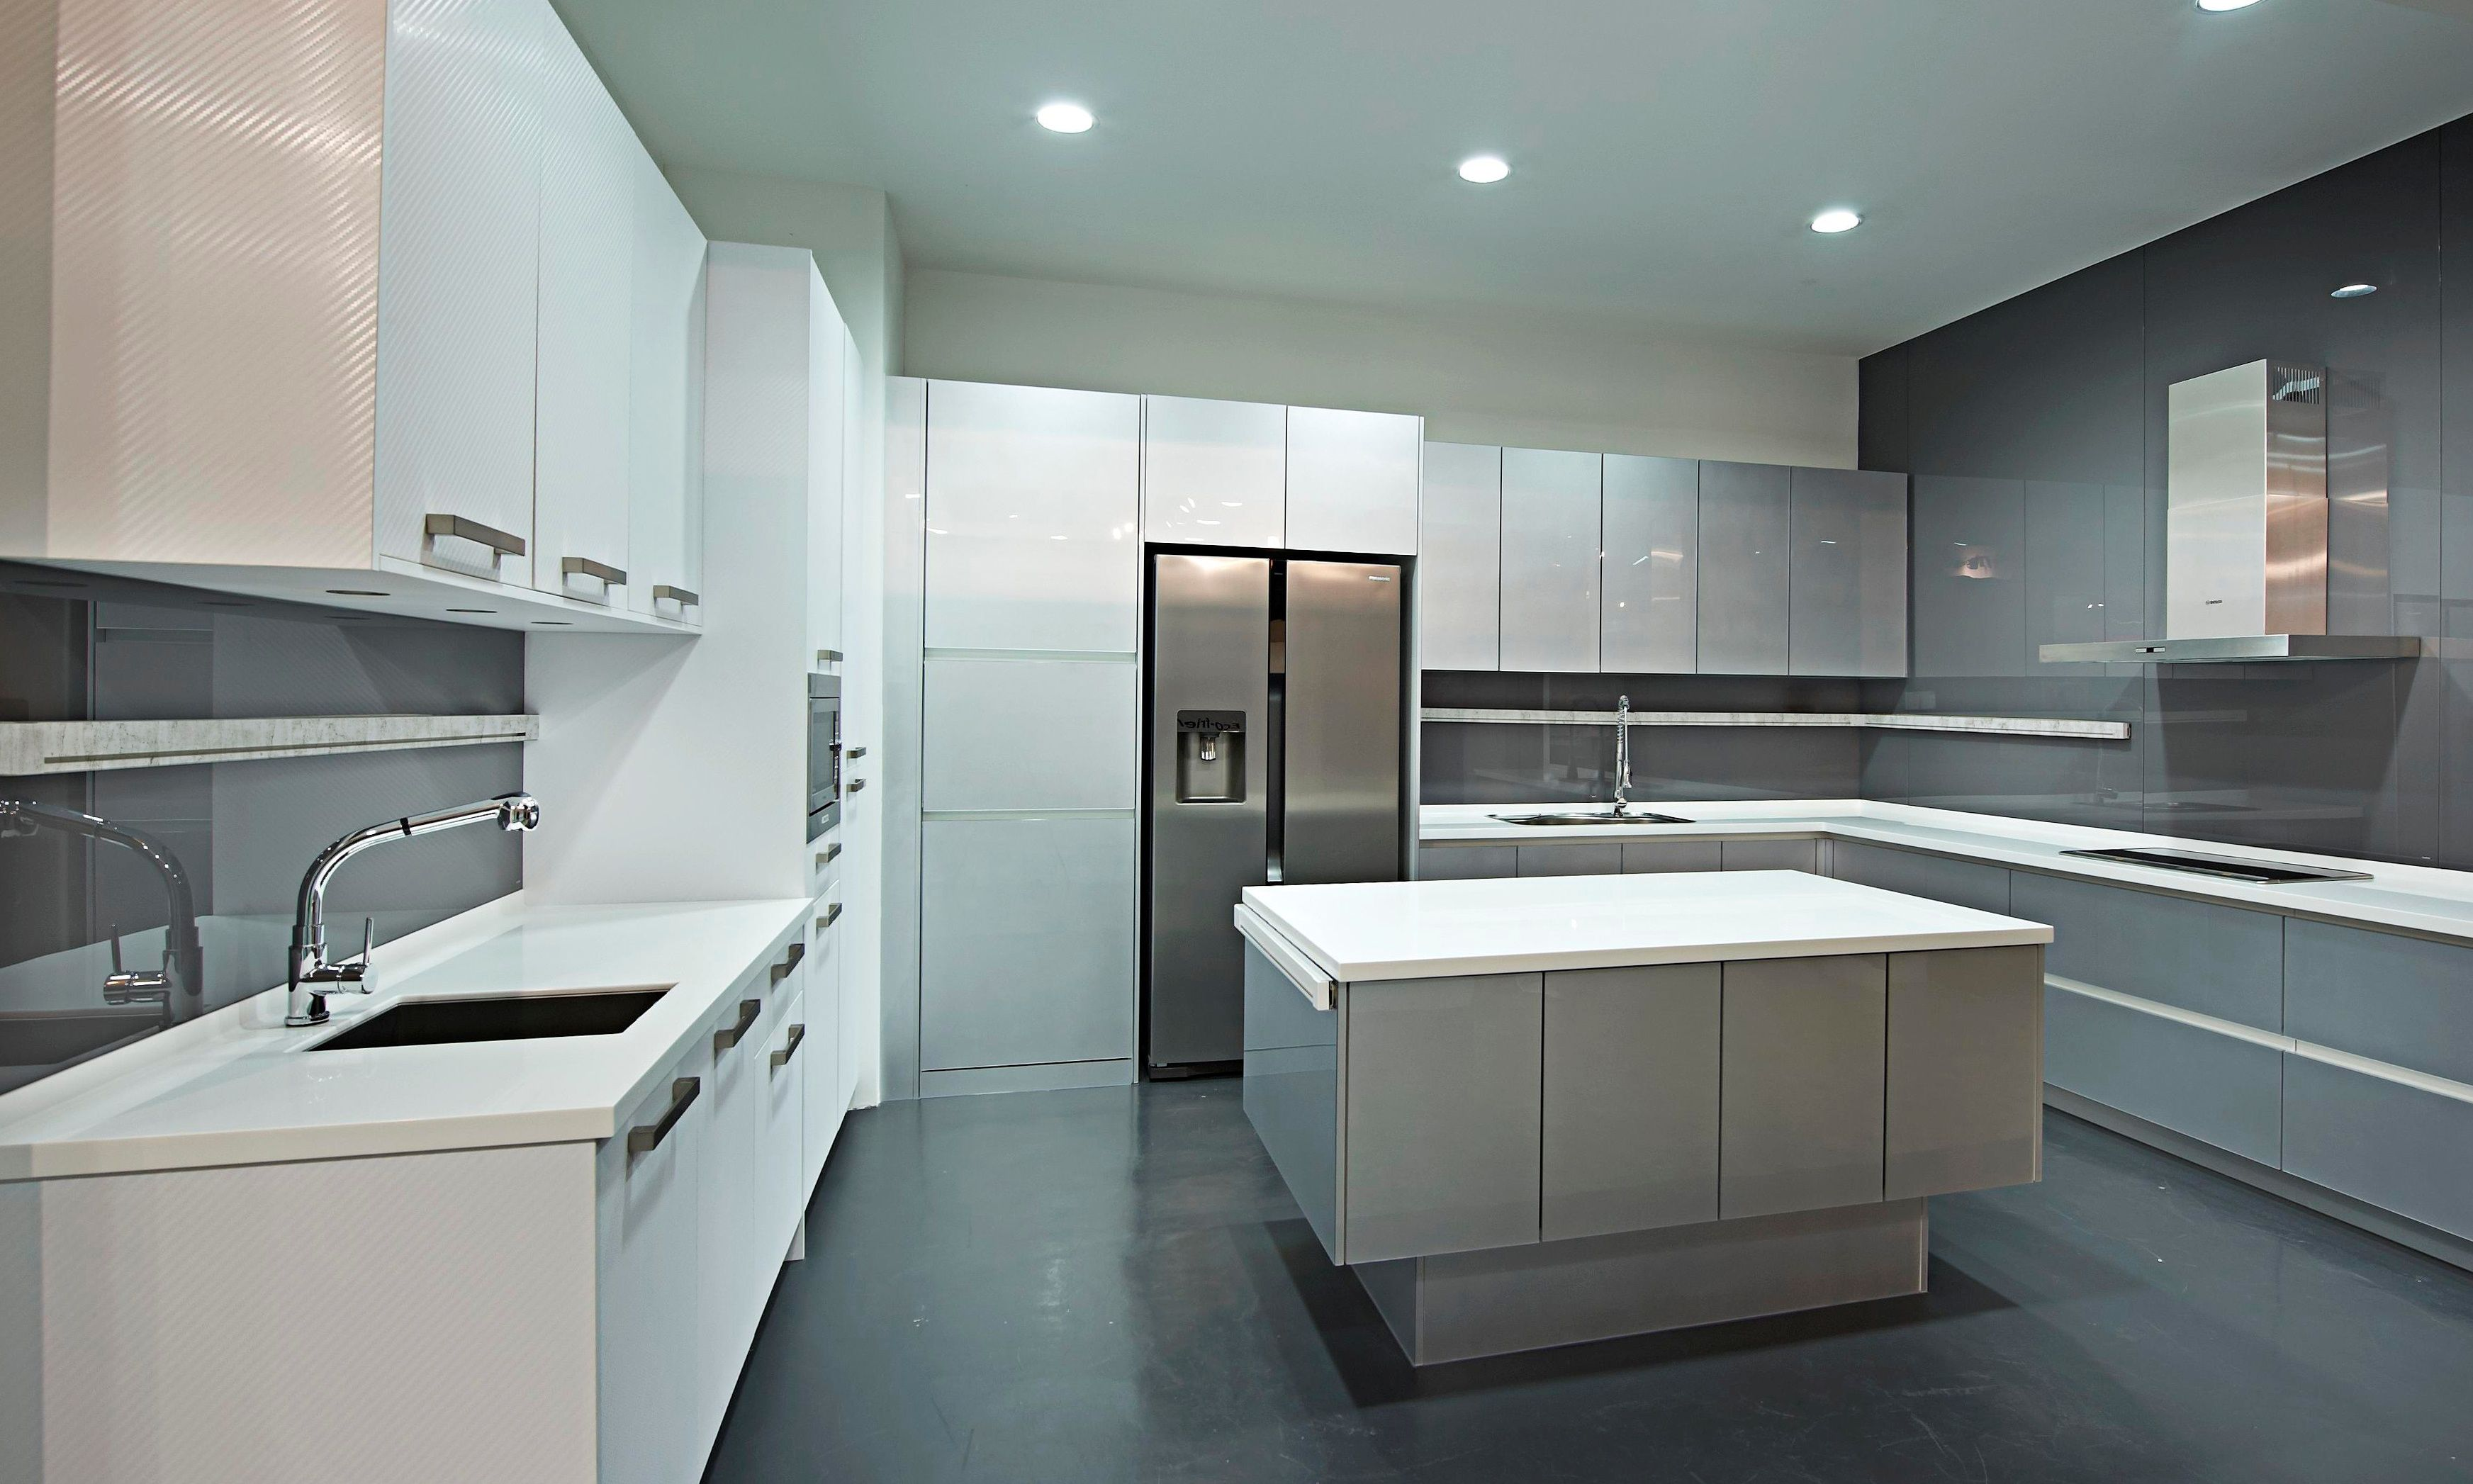 Mainline Power installed in a modern white and grey, gloss kitchen ...